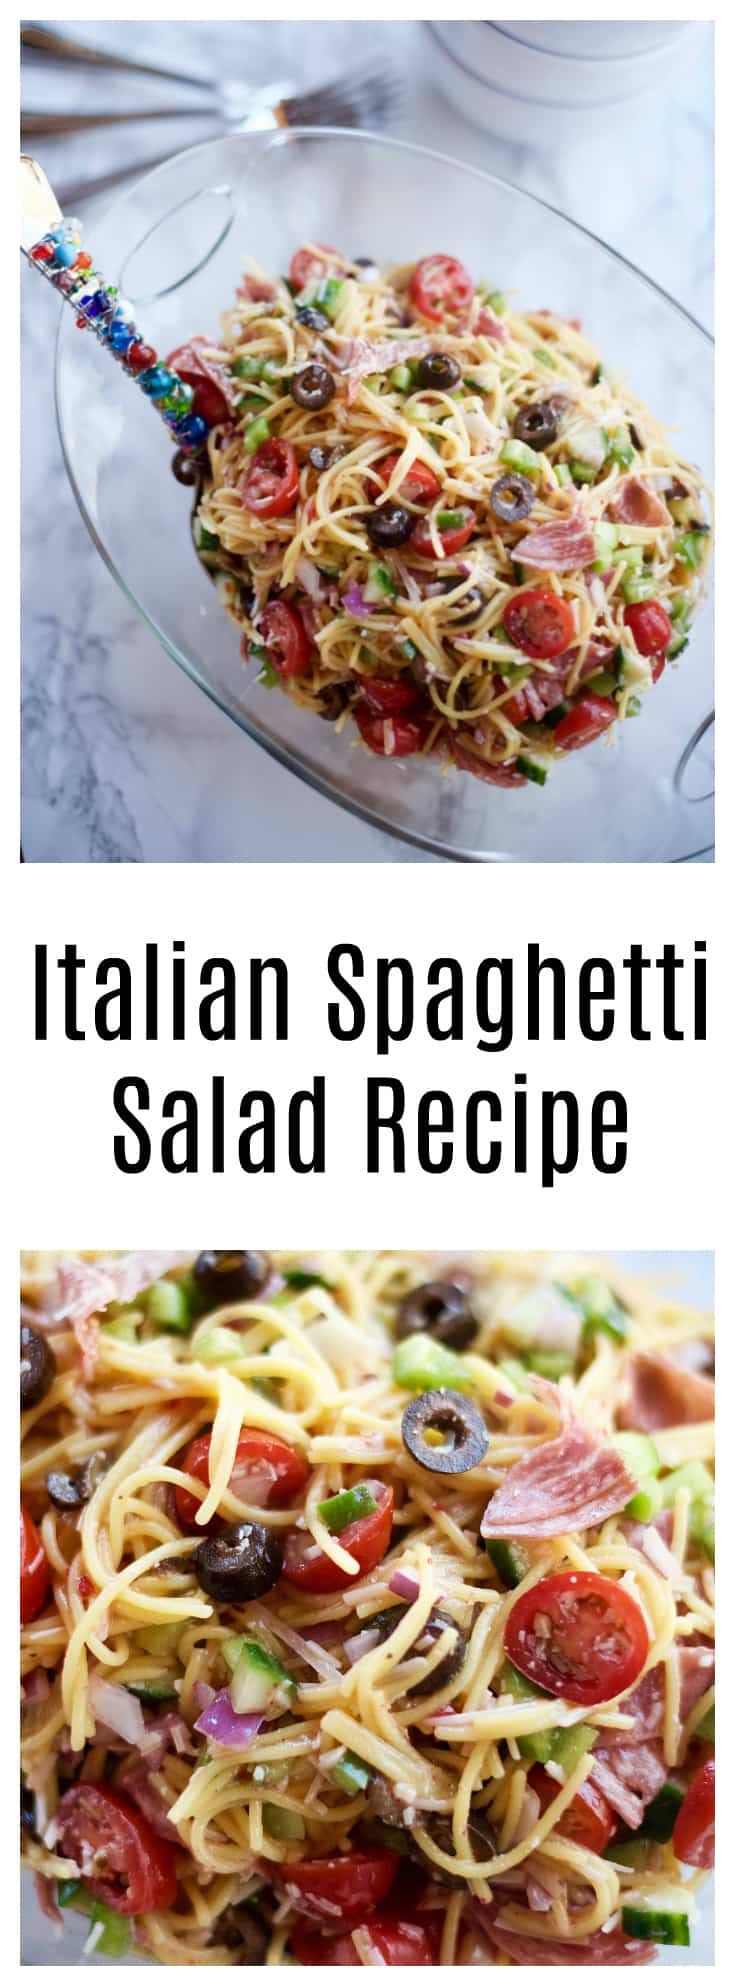 Summer Italian Spaghetti Salad Recipe